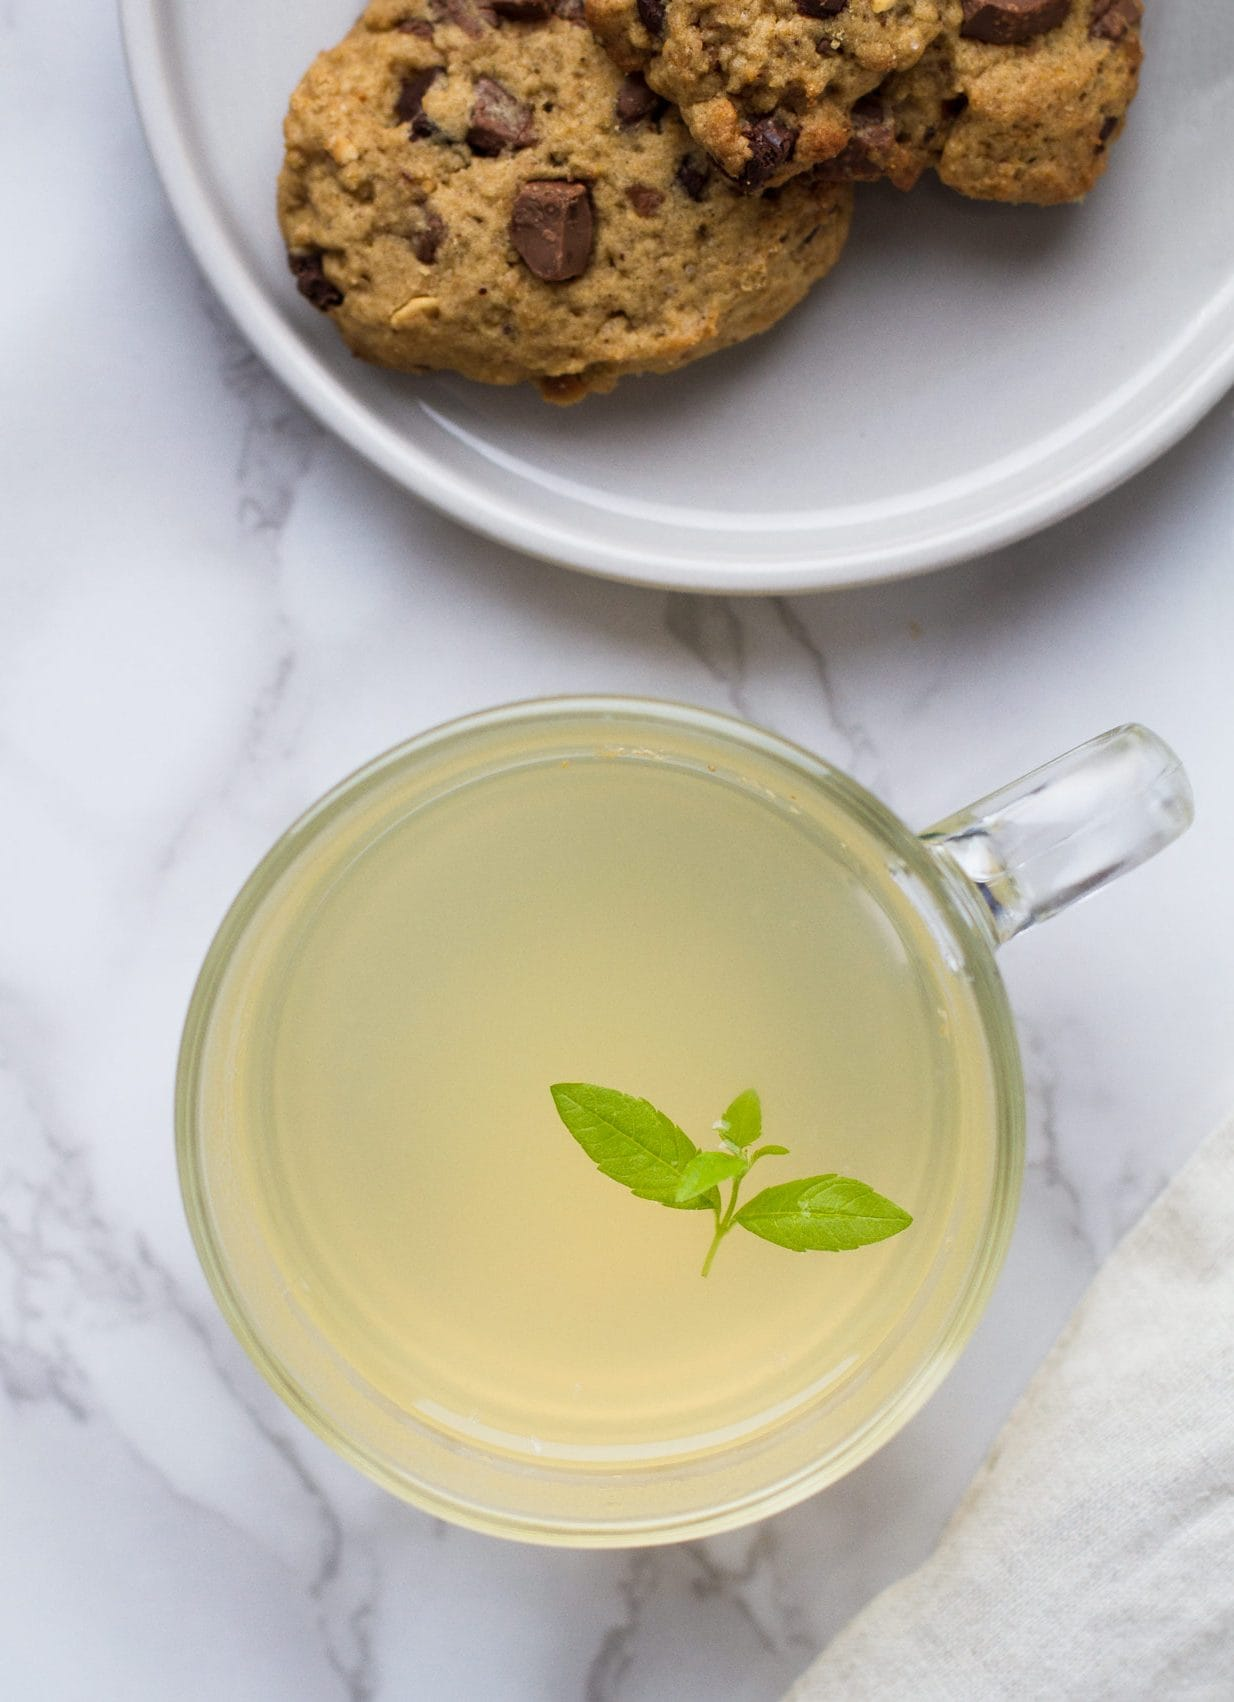 Bird's eye view of the pale yellow drink. Cookies in the upper right corner